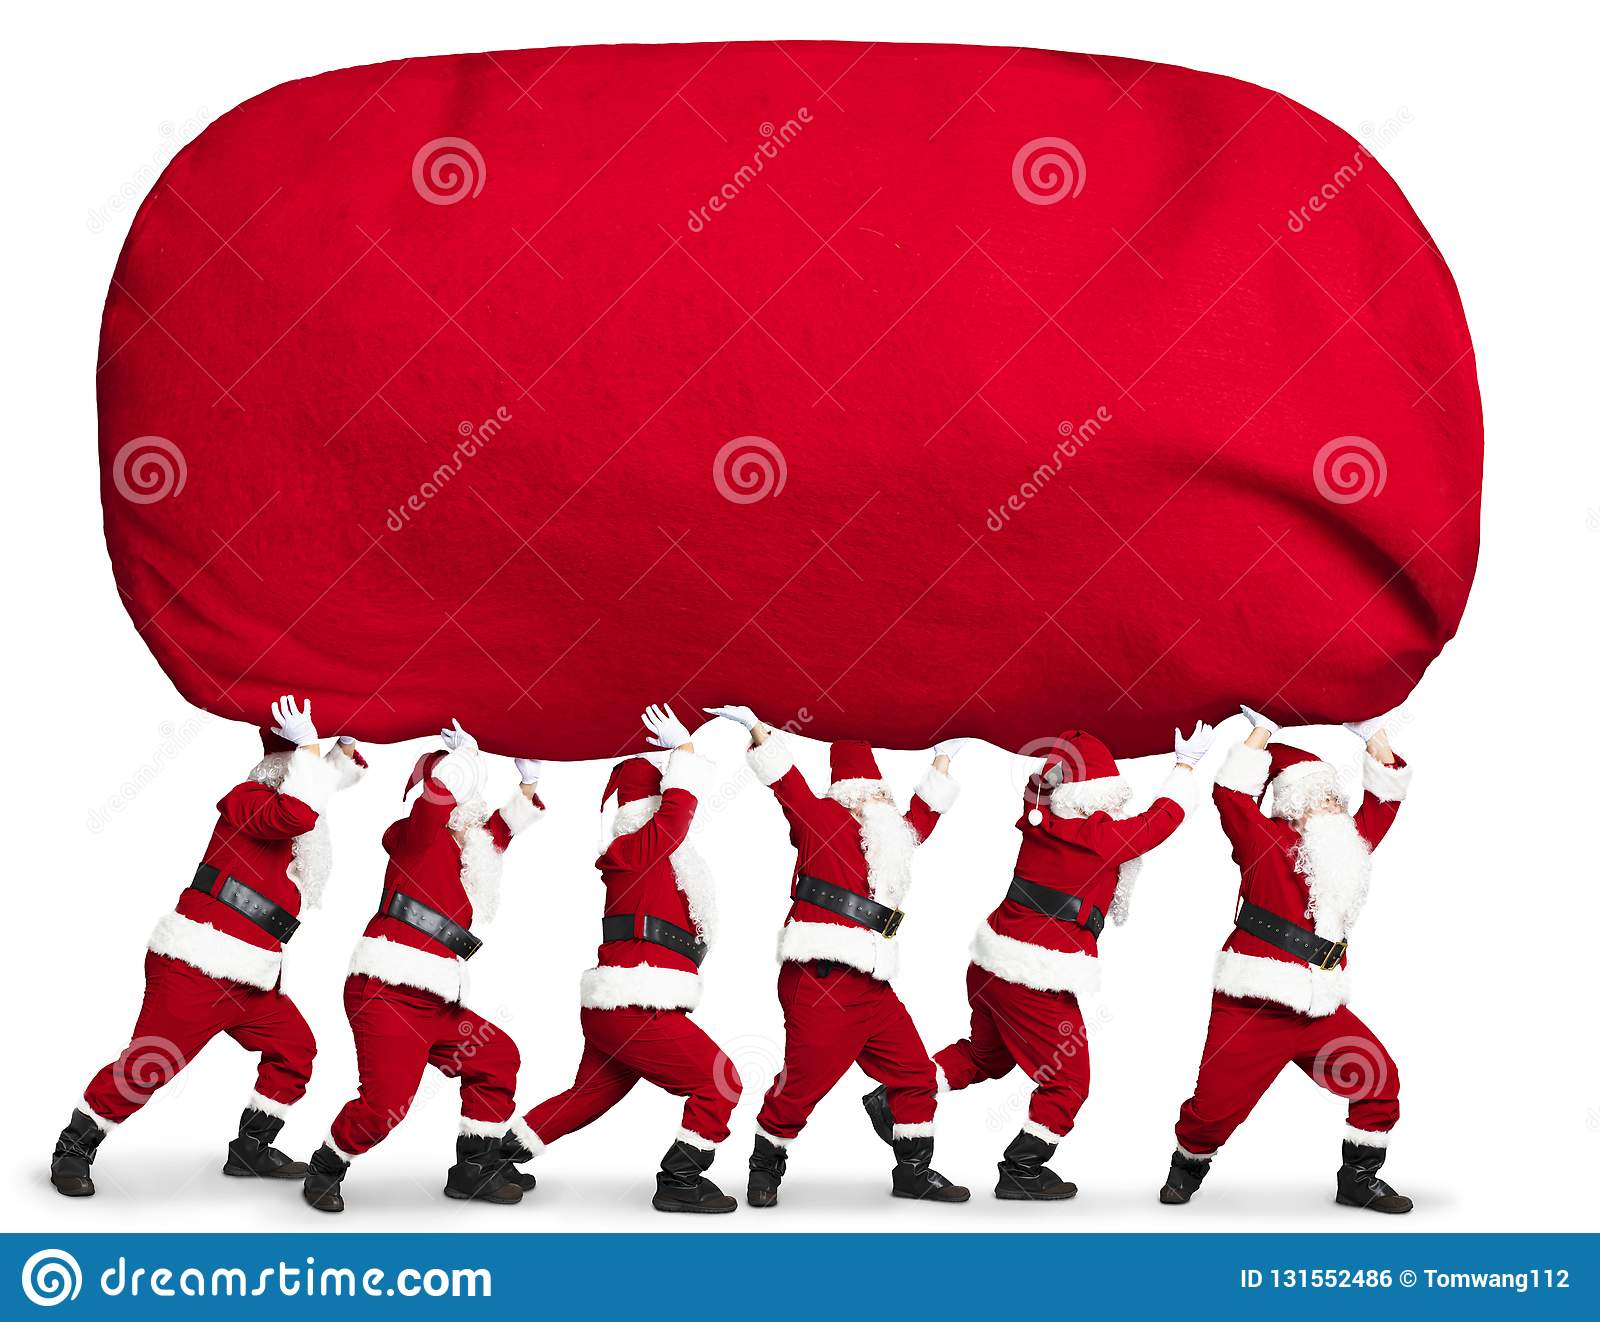 Santa claus carrying big and heavy gift red sack